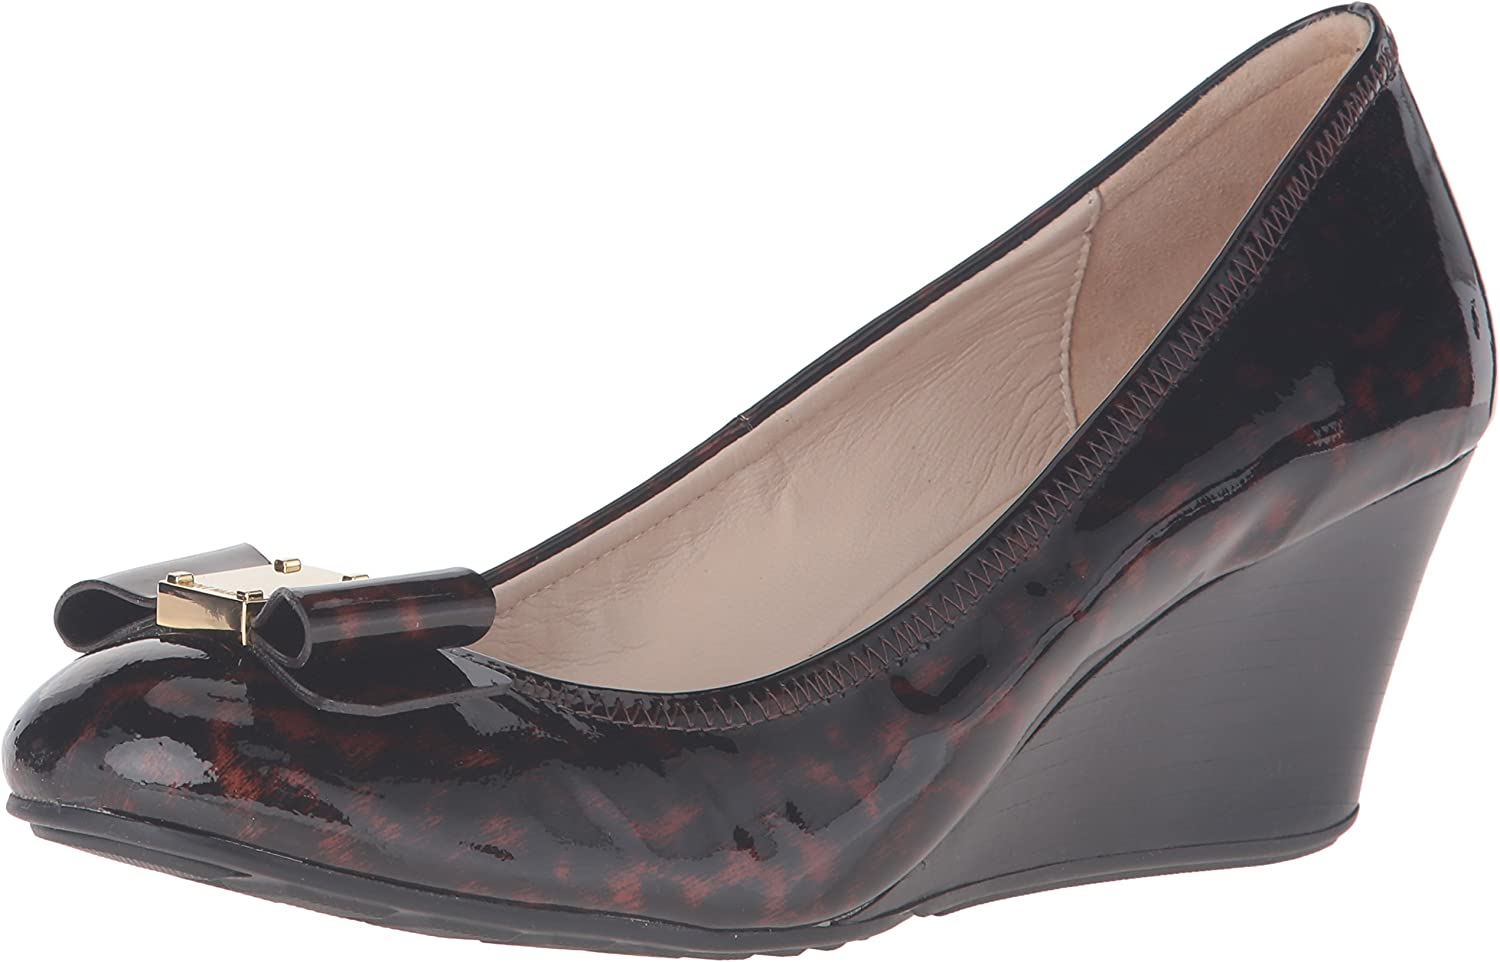 Cole Haan Womens Tali Grand Bow Wdg65 Wedge Pump